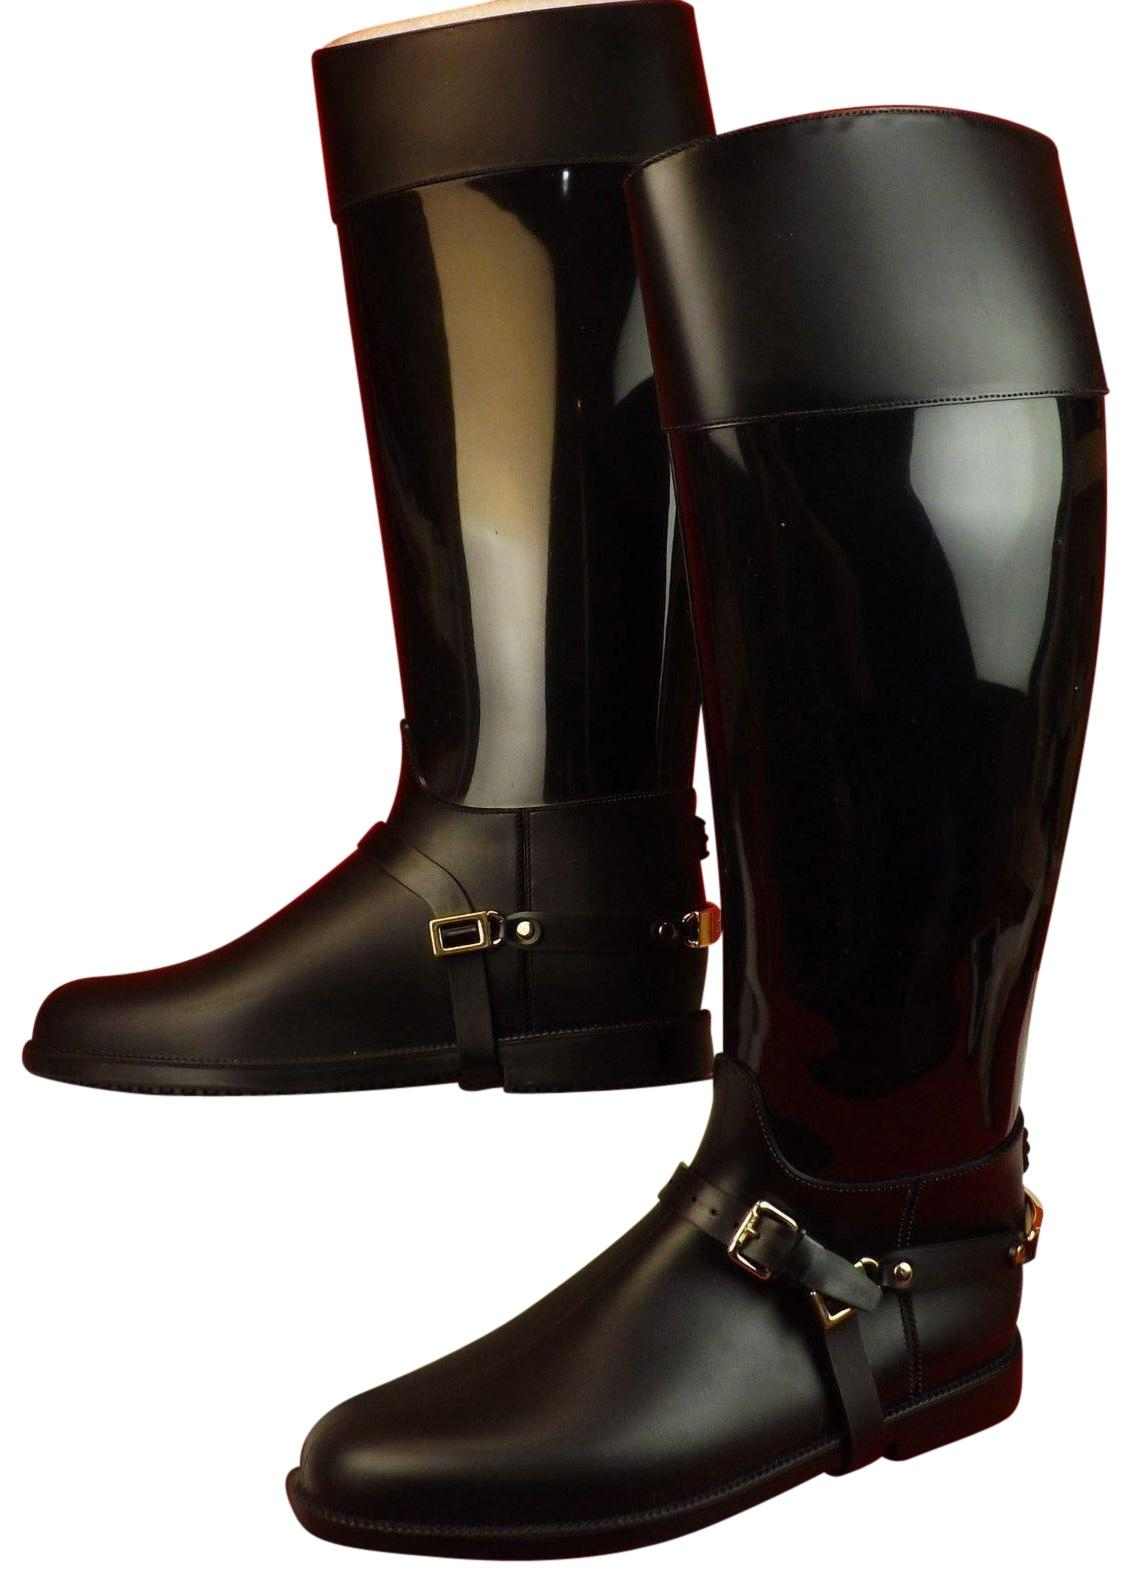 Jimmy Choo Black Cheshire Rubber Pvc Stirrup Strap Rain Riding Tall Boots/Booties Size EU 40 (Approx. US 10) Regular (M, B)